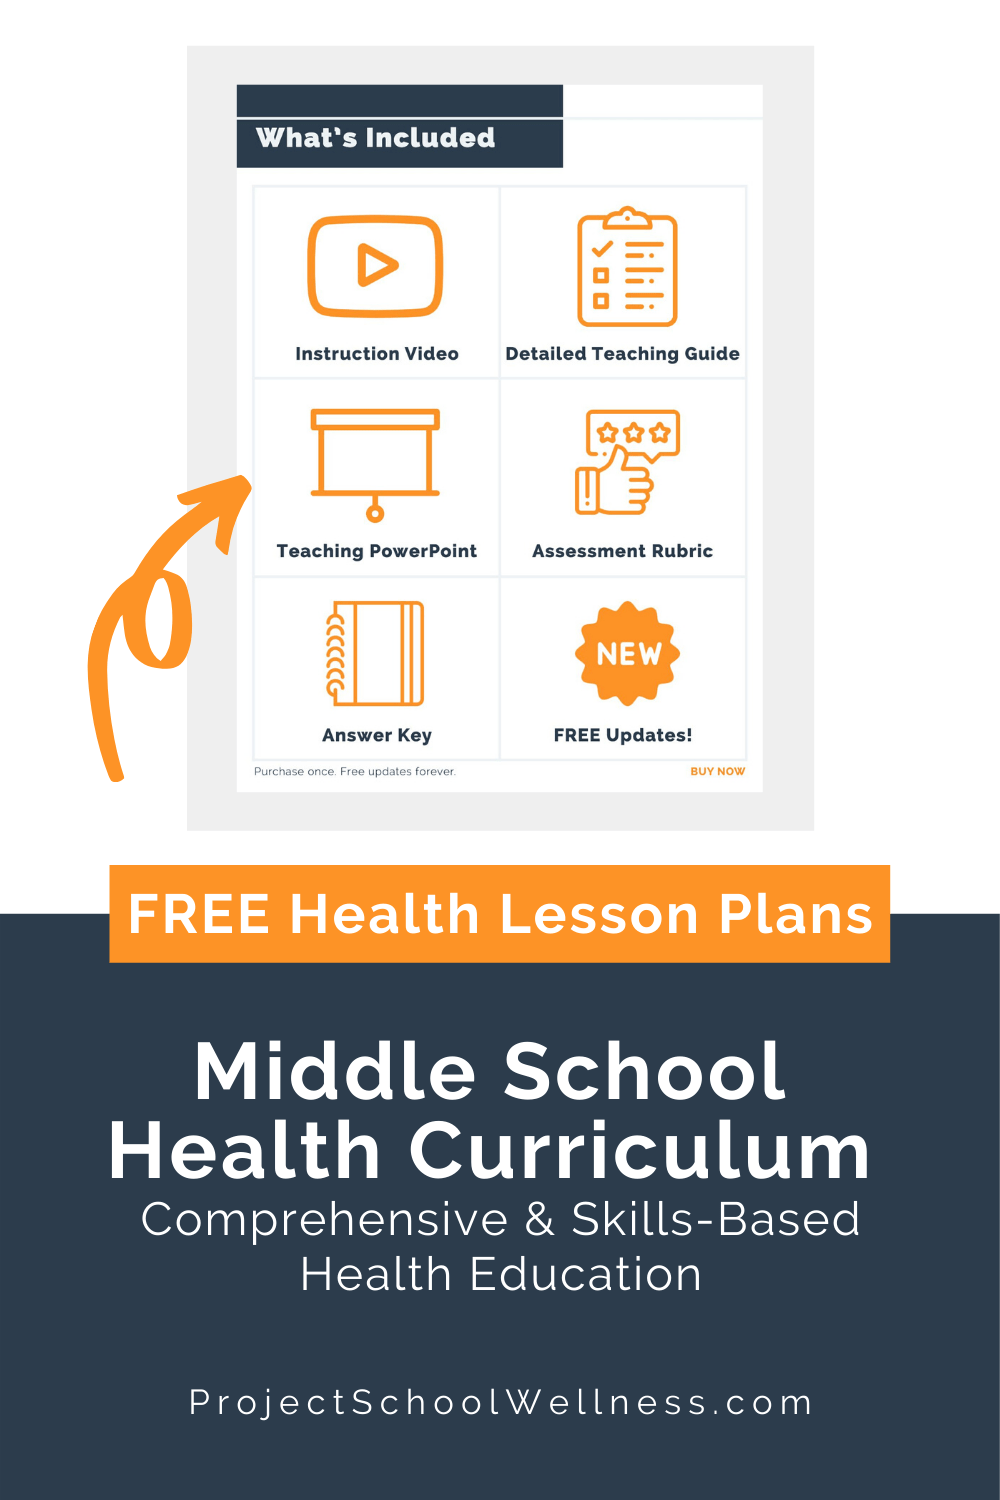 Download five FREE LESSON PLANS! Use this comprehensive and skills-based middle school health curriculum to teach students how to create a healthy life. This is a complete health education middle school program and comes with hundreds of health lesson plans requiring no extra planning and minimal prep. Includes health education posters, health education lessons, mental health lesson plan ideas, SEL activities for kids, health lessons for middle schools, and health worksheets.